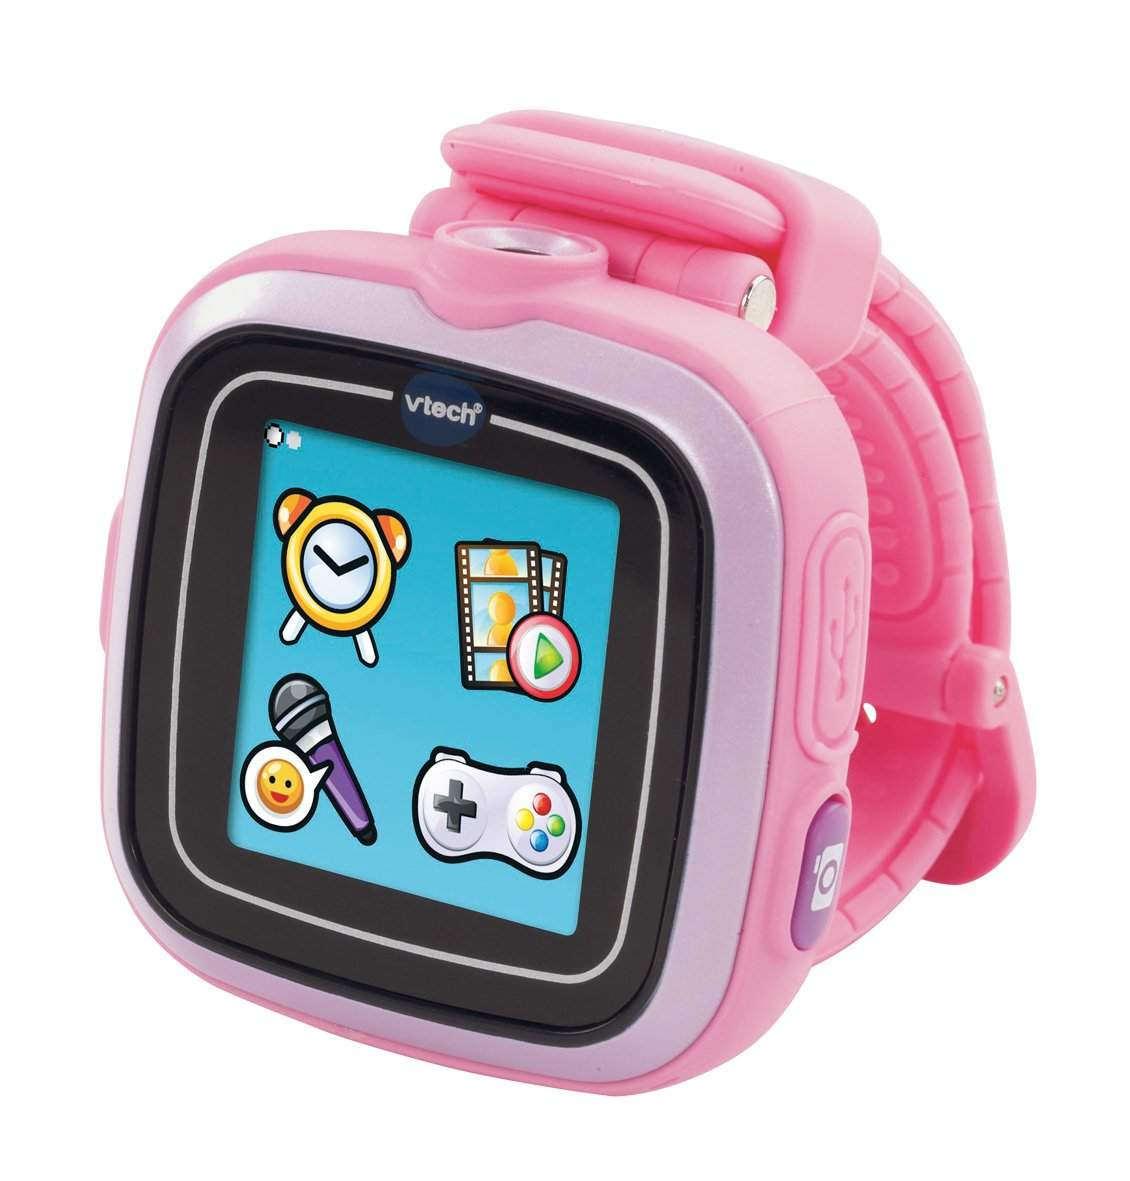 Amazon.com: VTech Kidizoom Smart Watch (Pink): Health ...